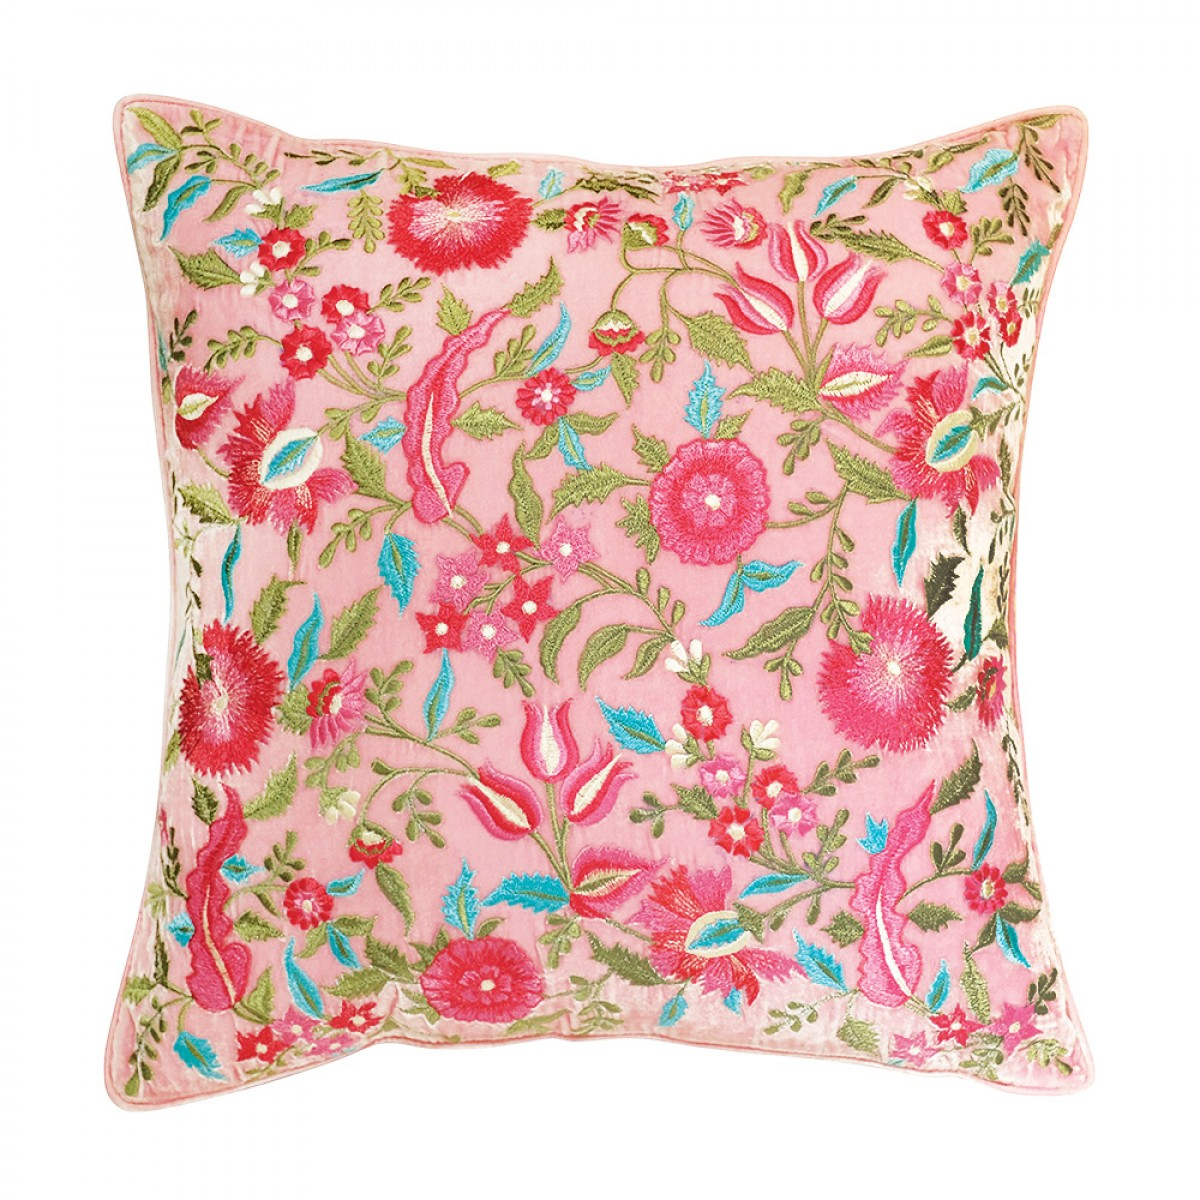 Designer Embroidered Cushion Cover - Rose